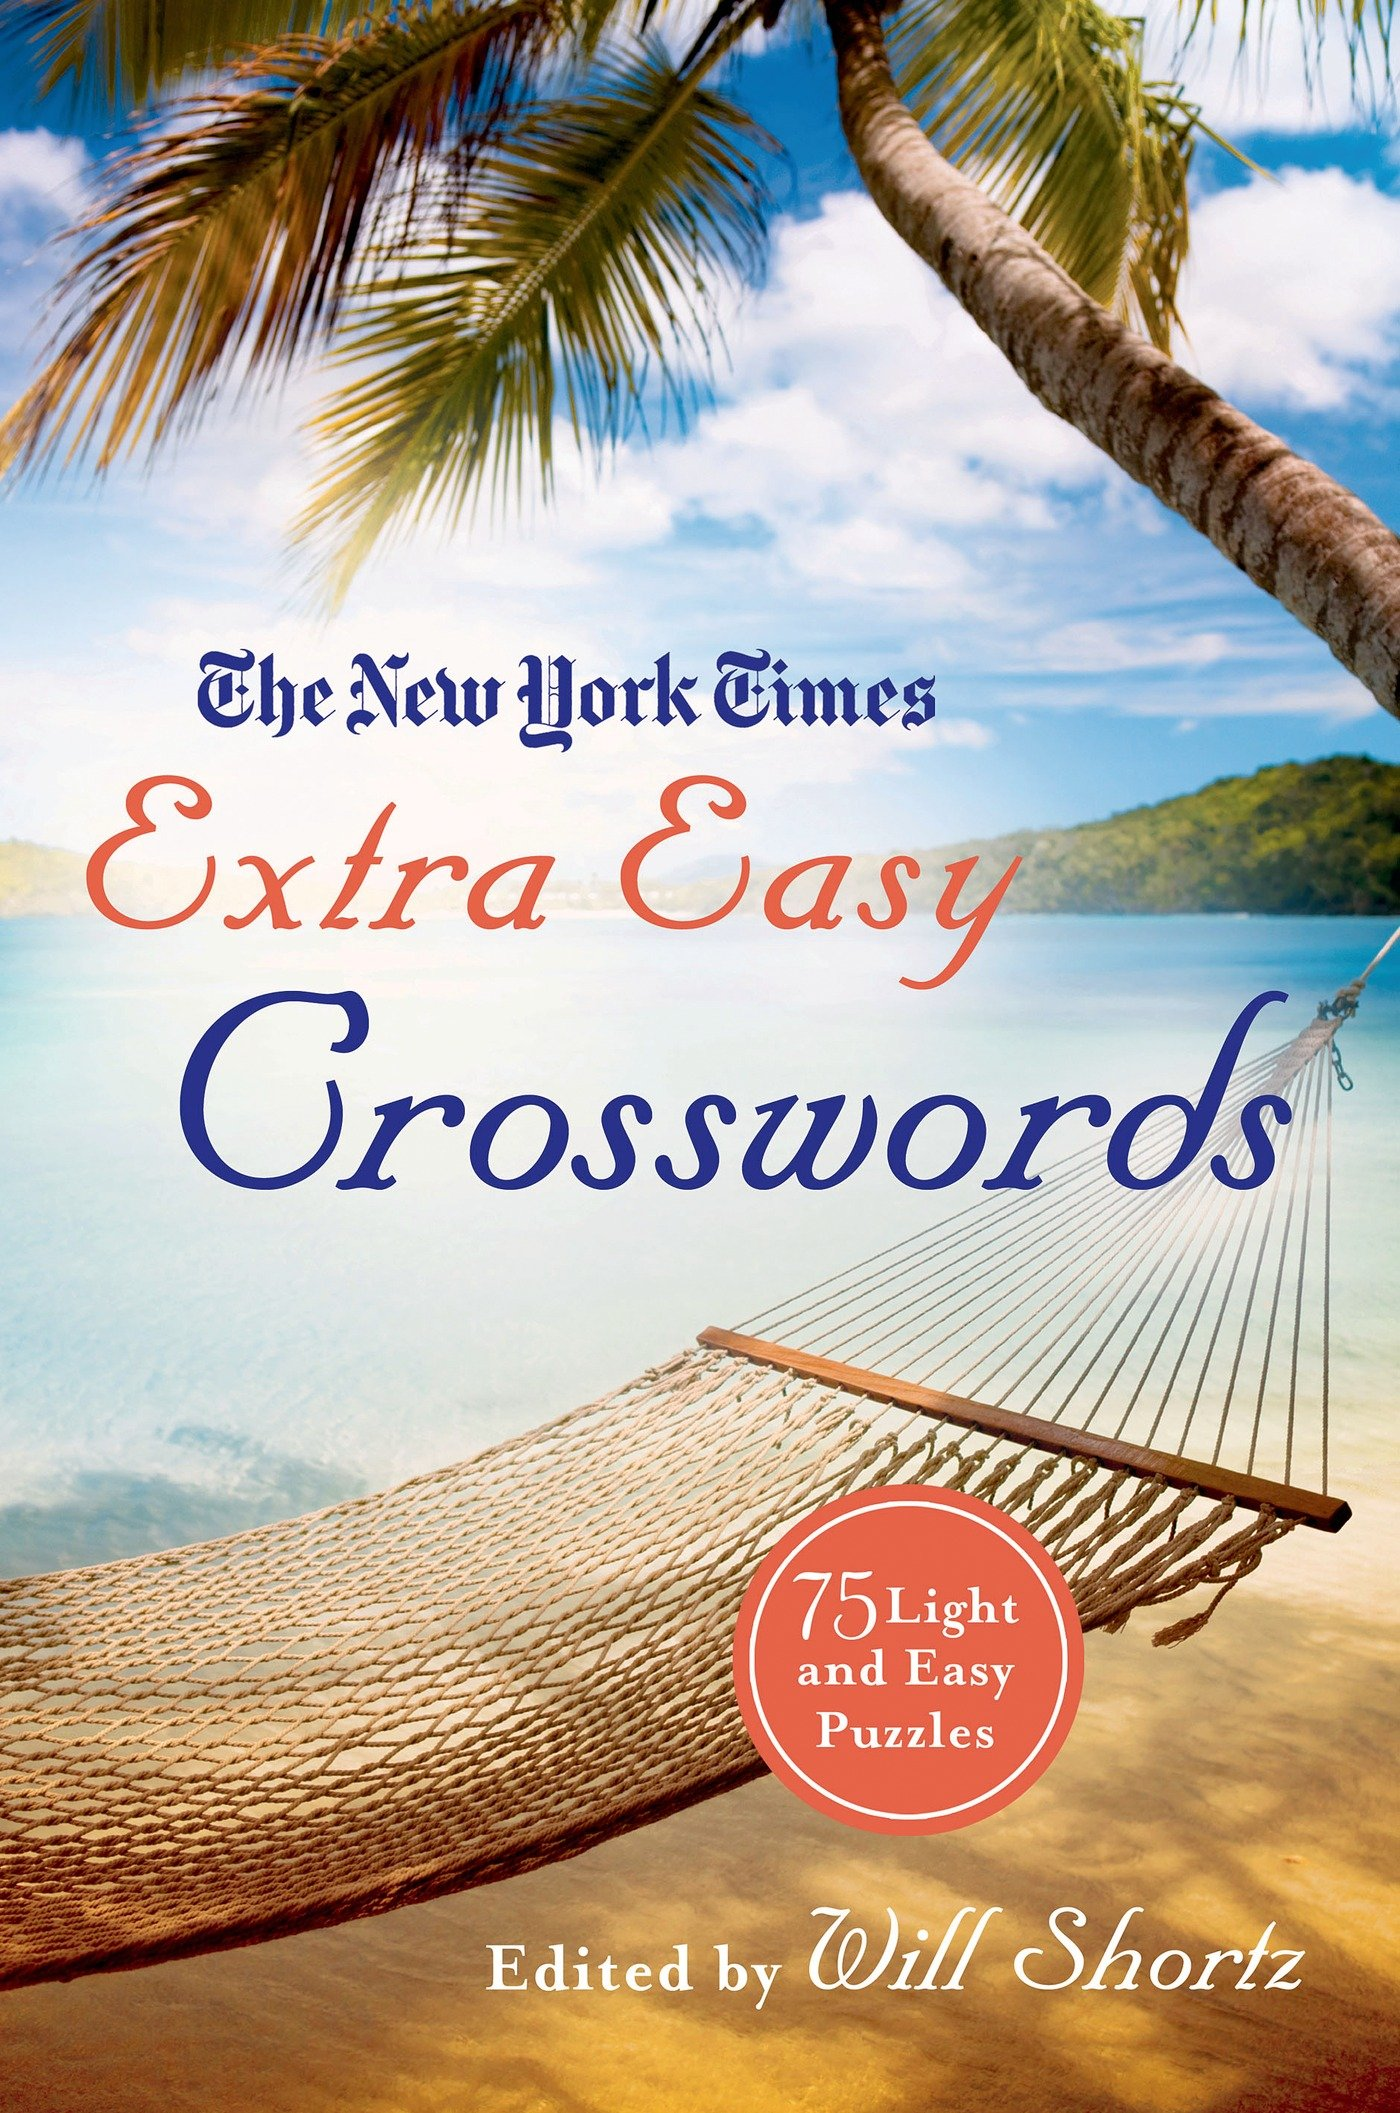 Download The New York Times Extra Easy Crosswords: 75 Light and  Easy Puzzles PDF